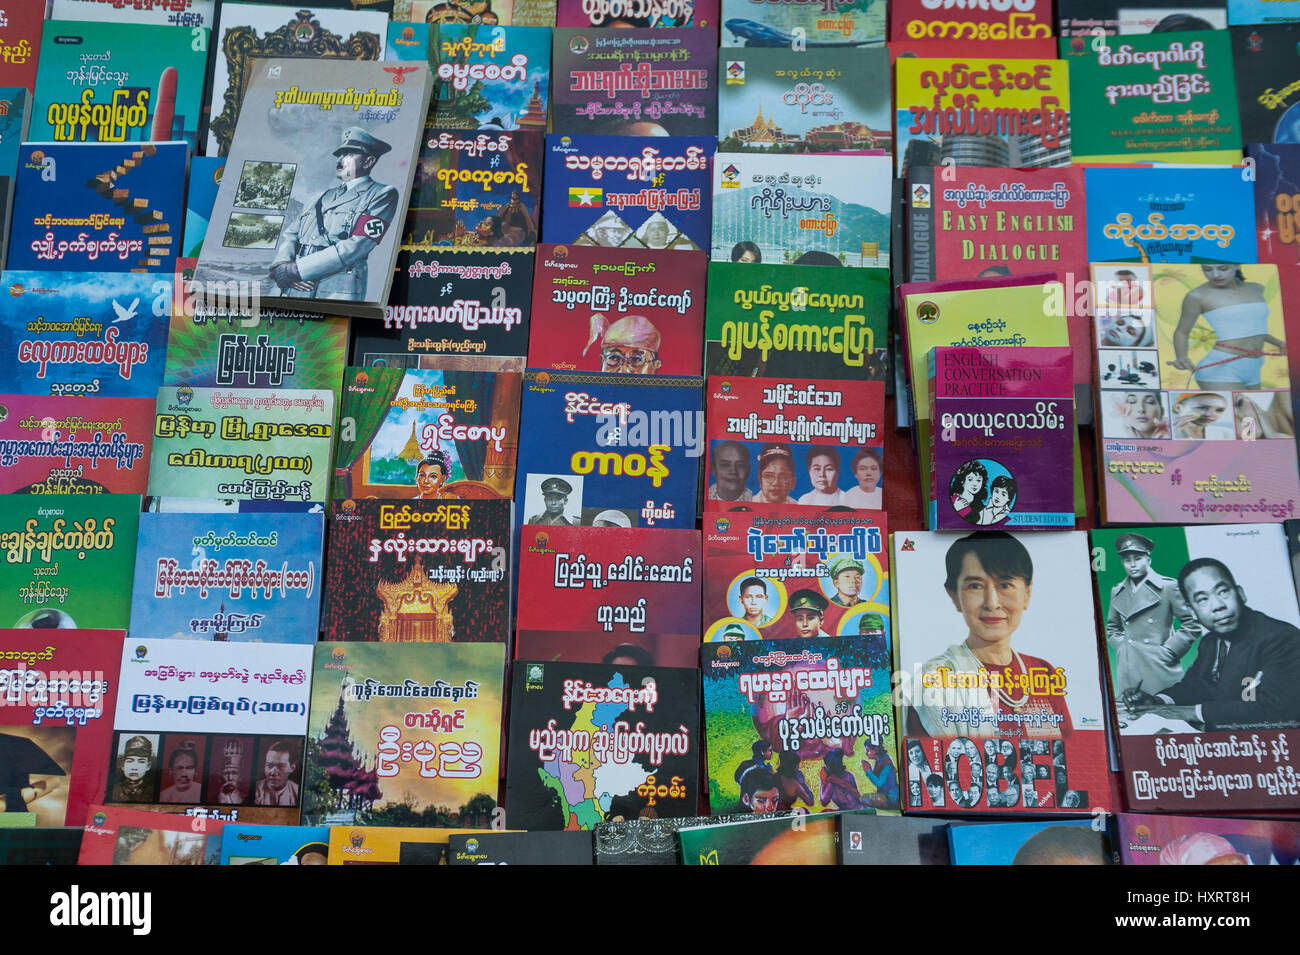 27.01.2017, Yangon, Republic of the Union of Myanmar, Asia - The display of a bookseller in the center of the former - Stock Image